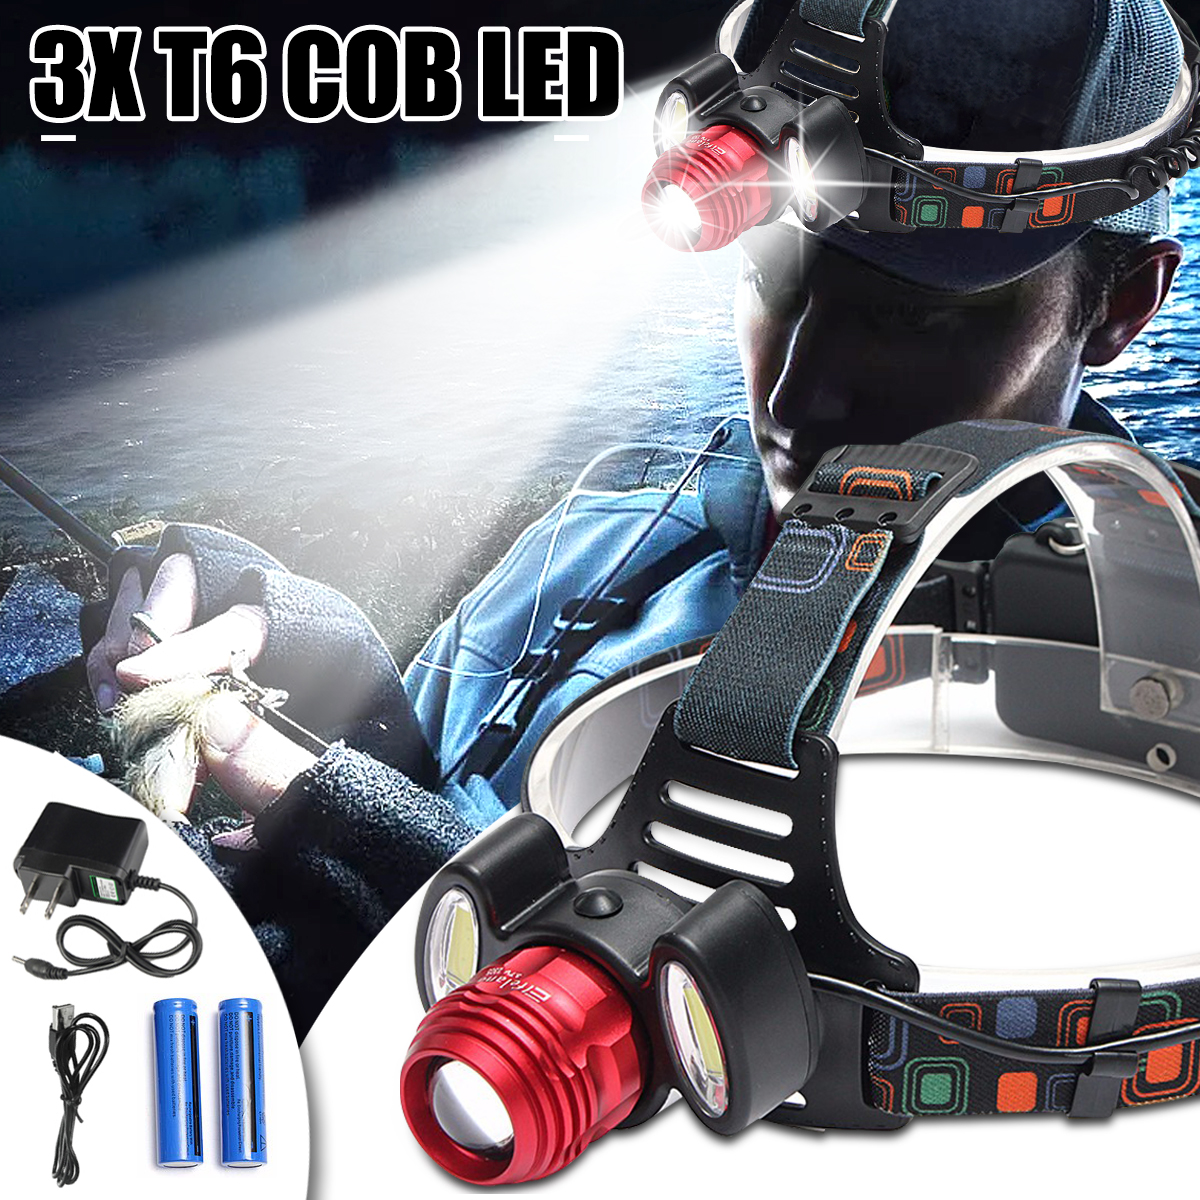 30000lm LED Headlamp 1*T6+2*COB Fishing Headlight Flashlight Torch Head Lamp Light 18650 Rechargeable For Camping Hunting 30w led cob usb rechargeable 18650 cob led headlamp headlight fishing torch flashlight